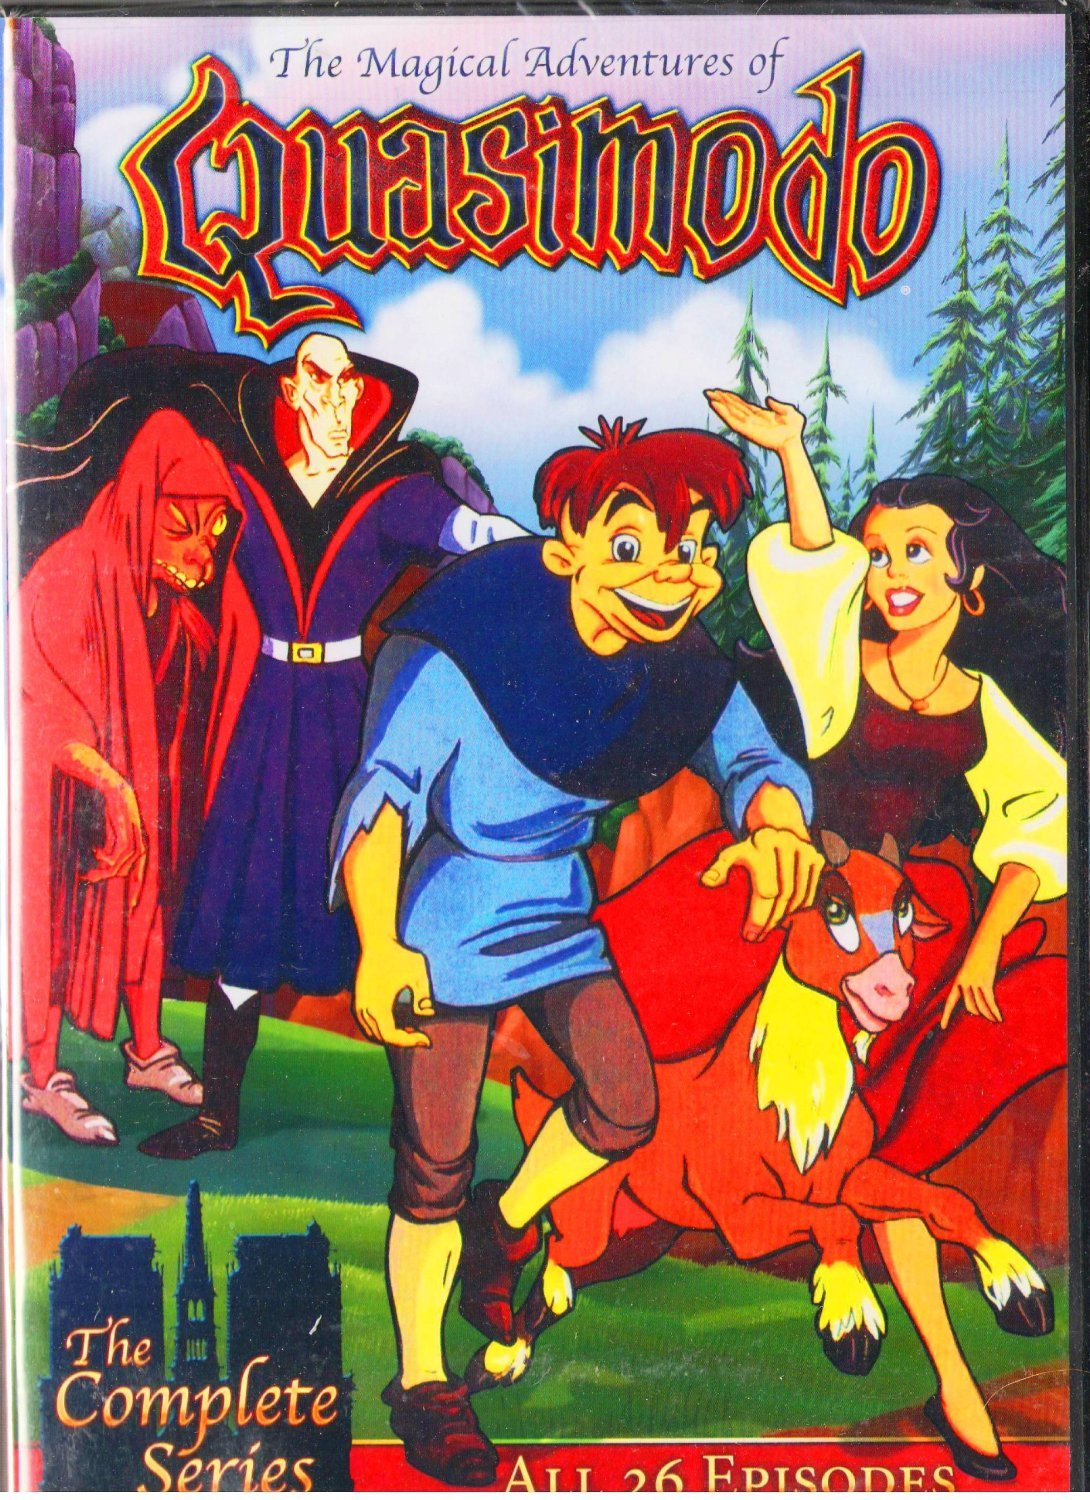 https://static.tvtropes.org/pmwiki/pub/images/magical_adventures_of_quasimodo.jpg